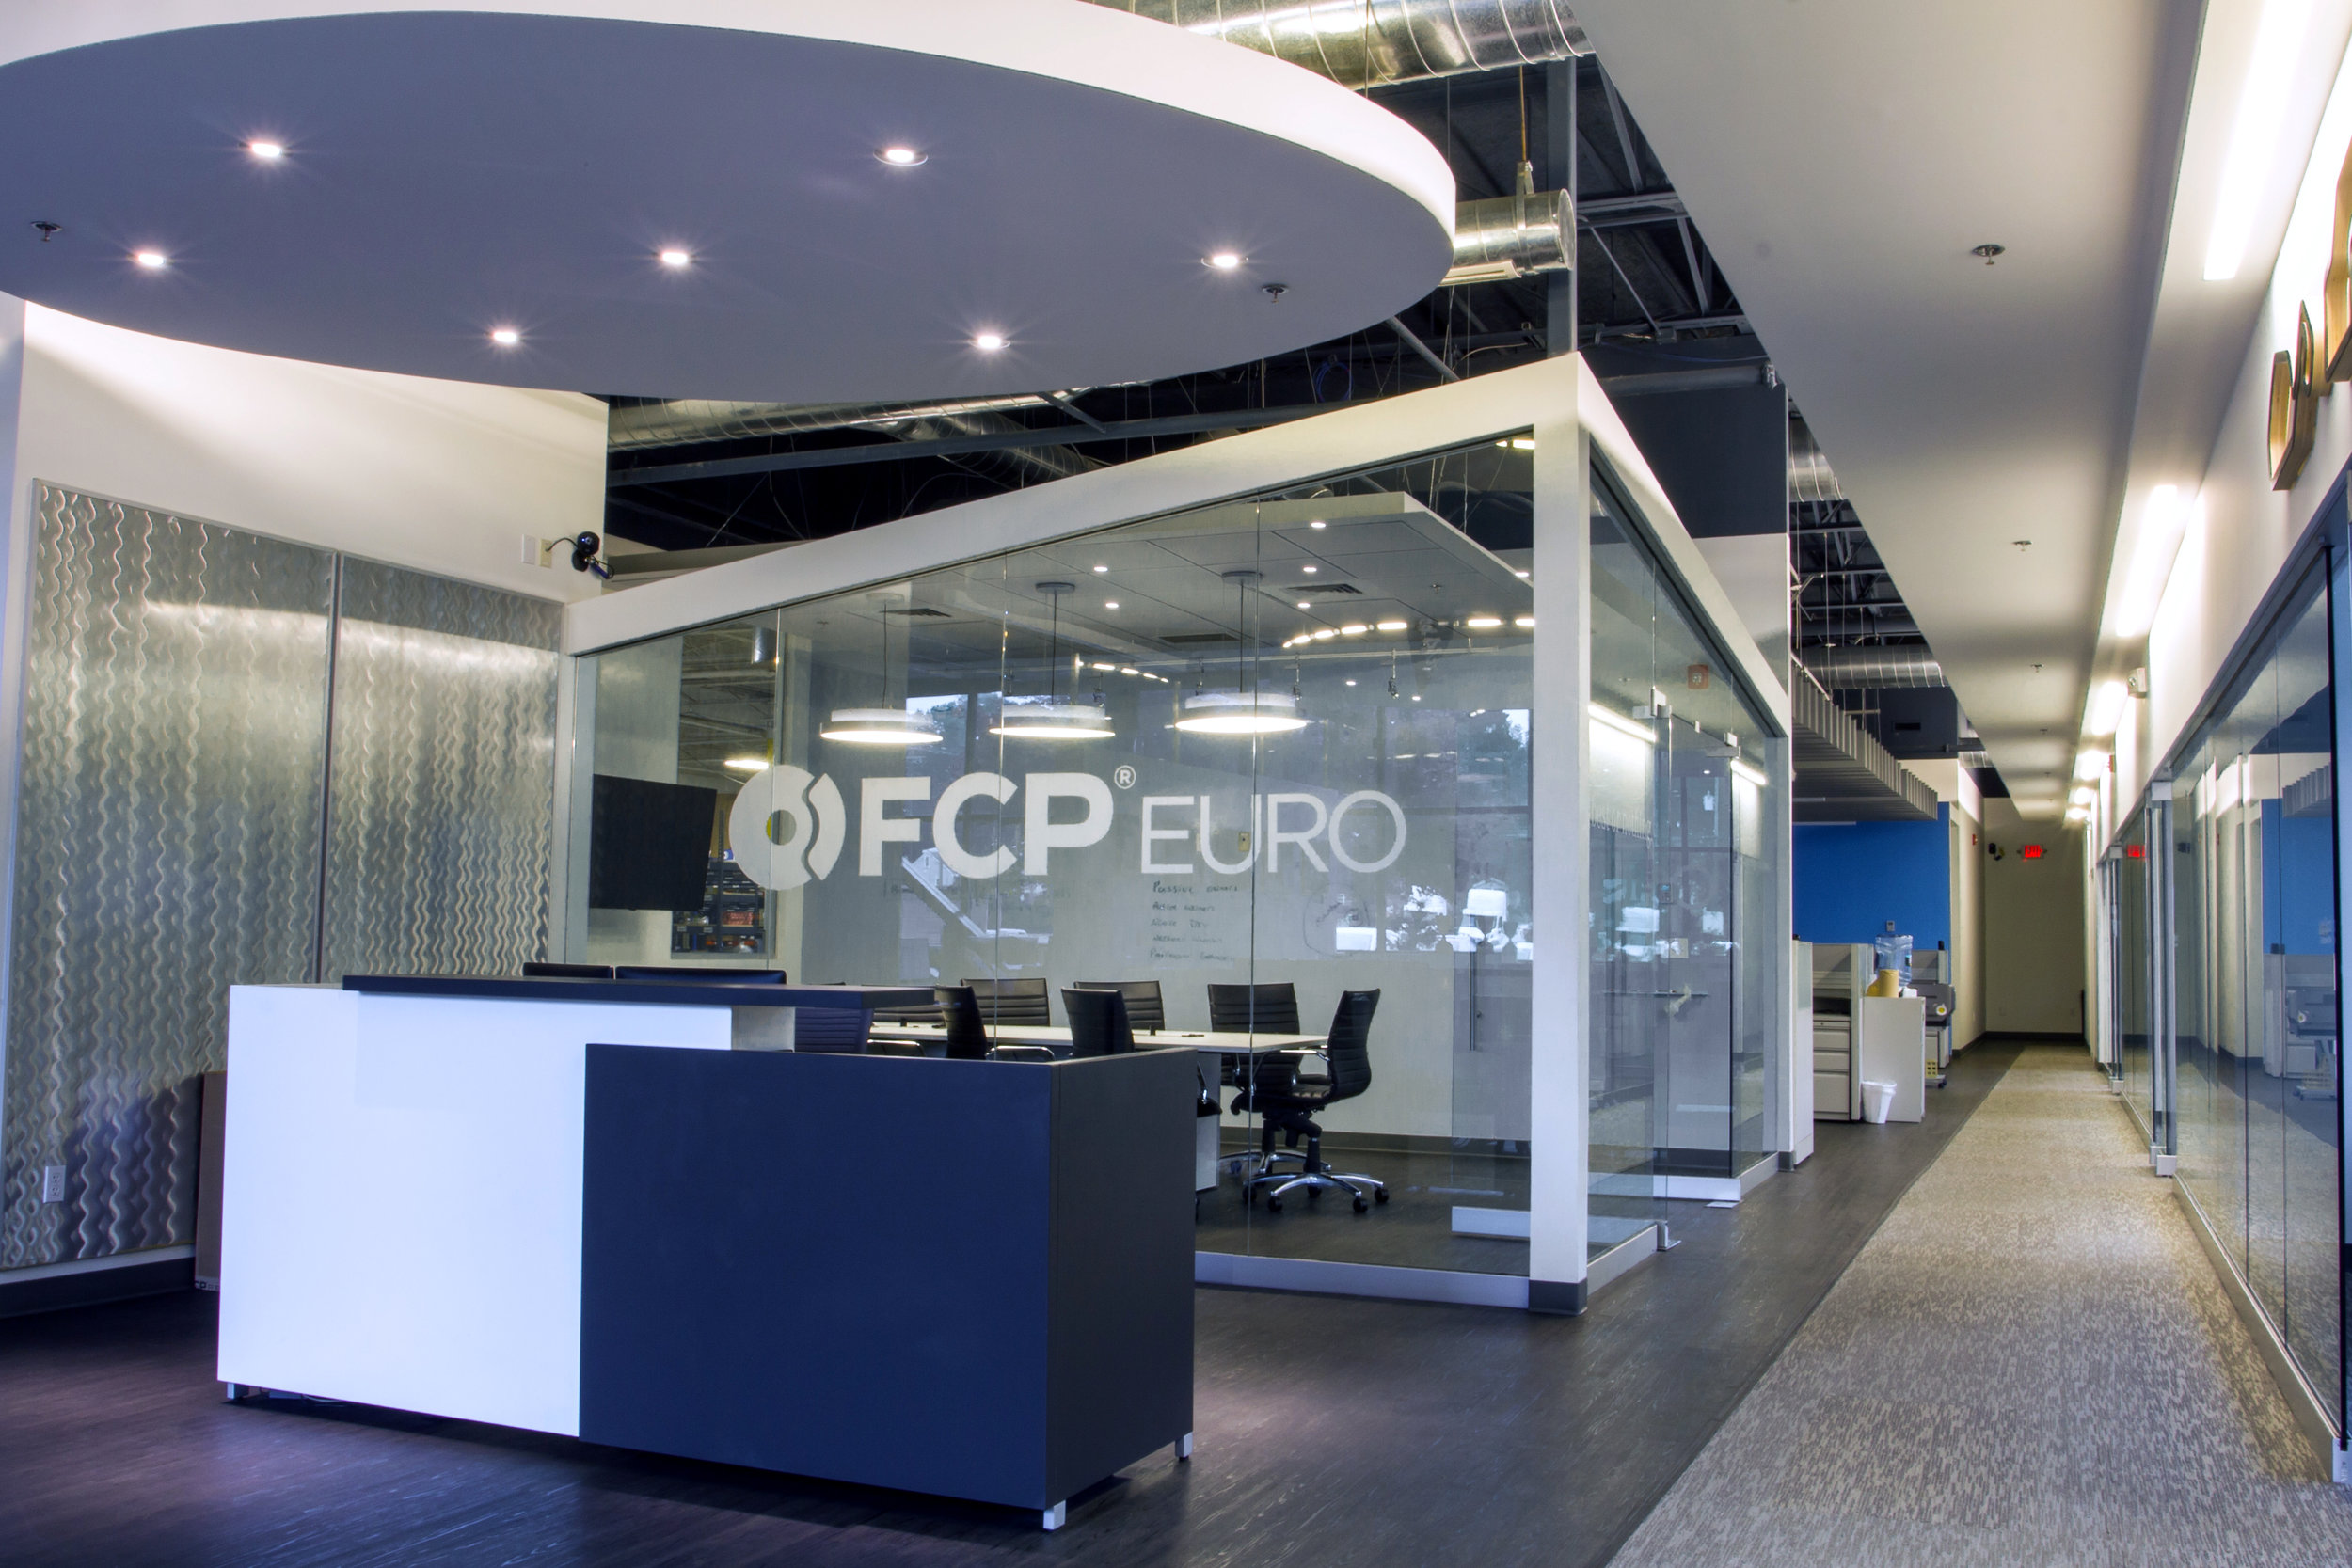 Why I Work At FCP Euro - Rob DiCola, Fulfillment Manager